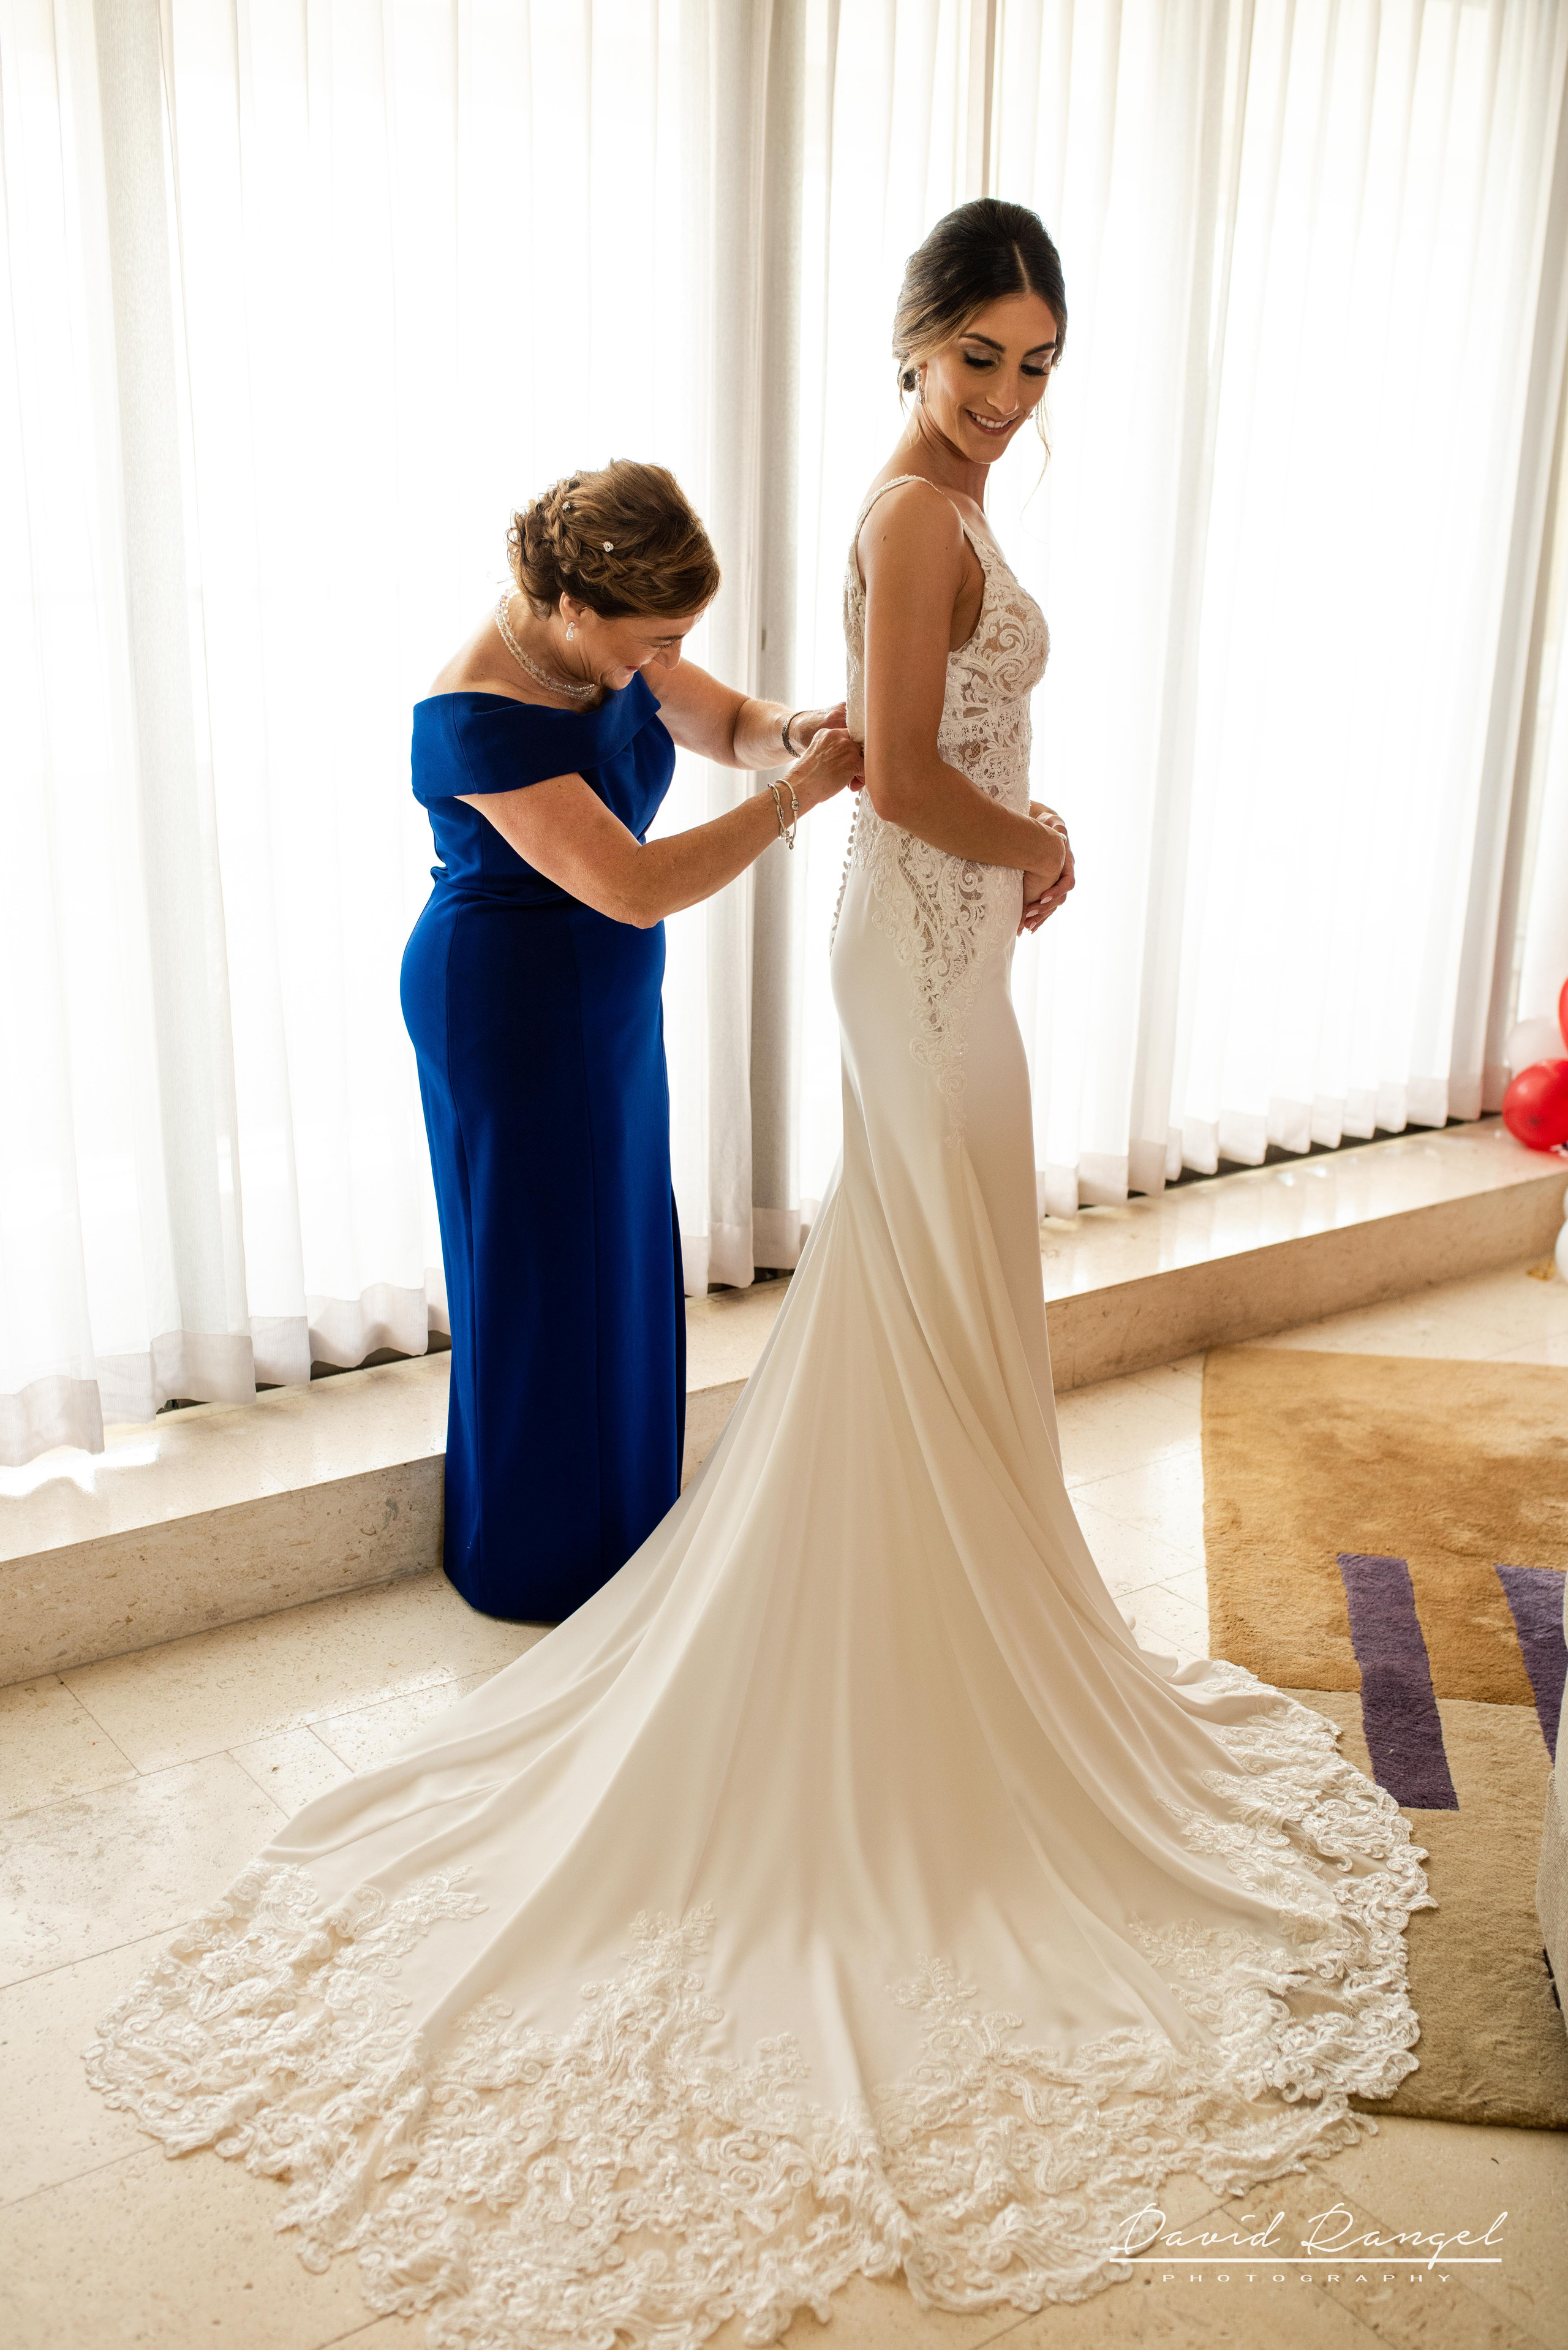 bride+getting+ready+dress+mother+helping+photo